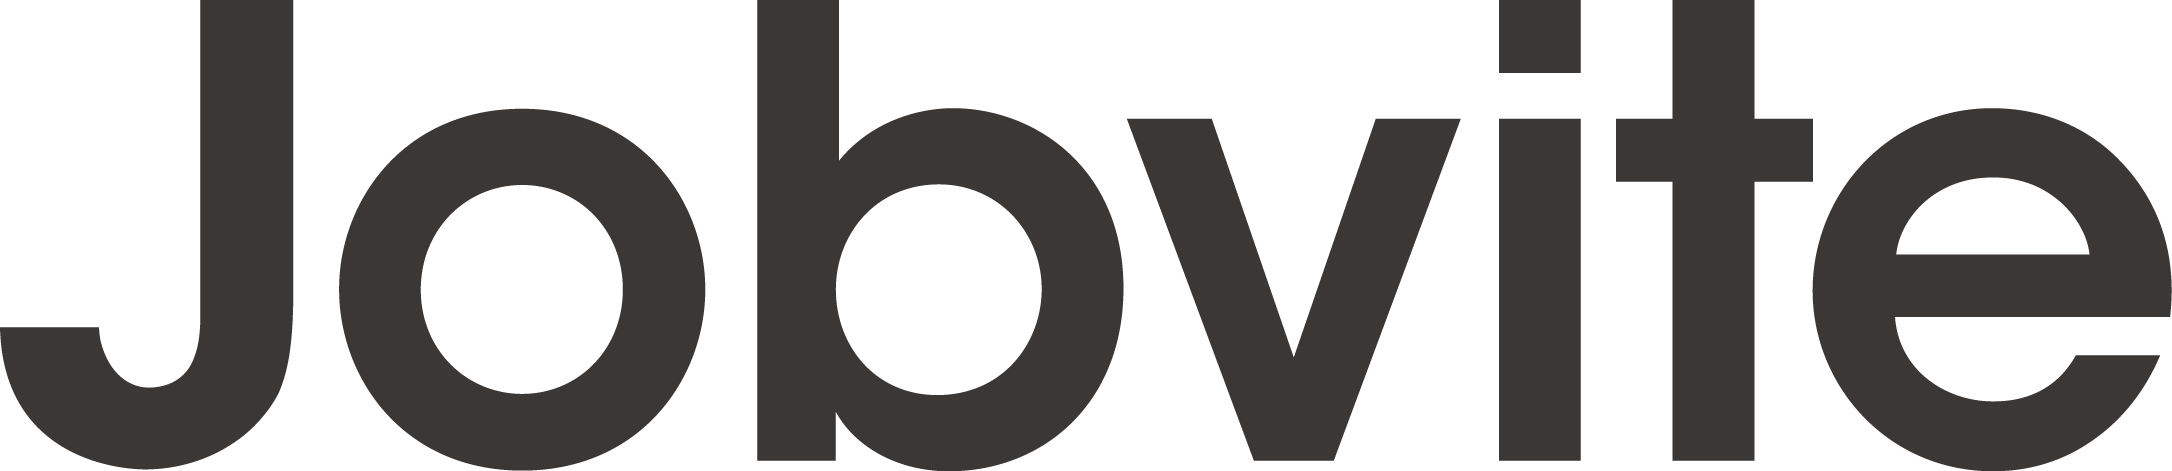 APPLICANT TRACKING SYSTEMS (ATS) - jobvite-logo.png